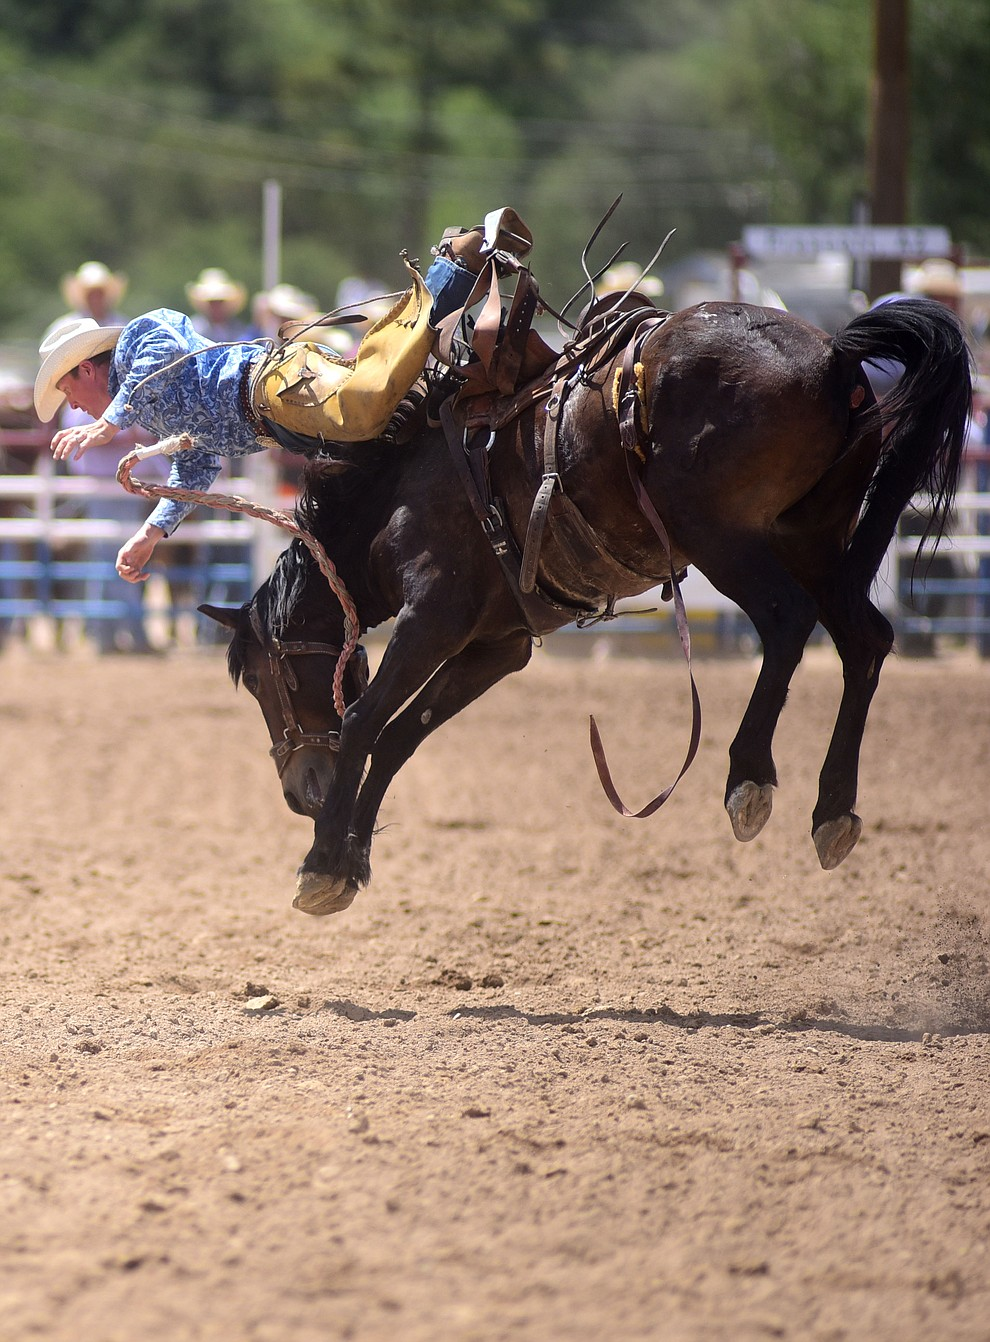 Miles Dewitt takes the hard way off but won the Ranch Bronc Riding with a 79 during the final performance of the 2016 Prescott Frontier Days Rodeo Monday afternoon. (Les Stukenberg/The Daily Courier)